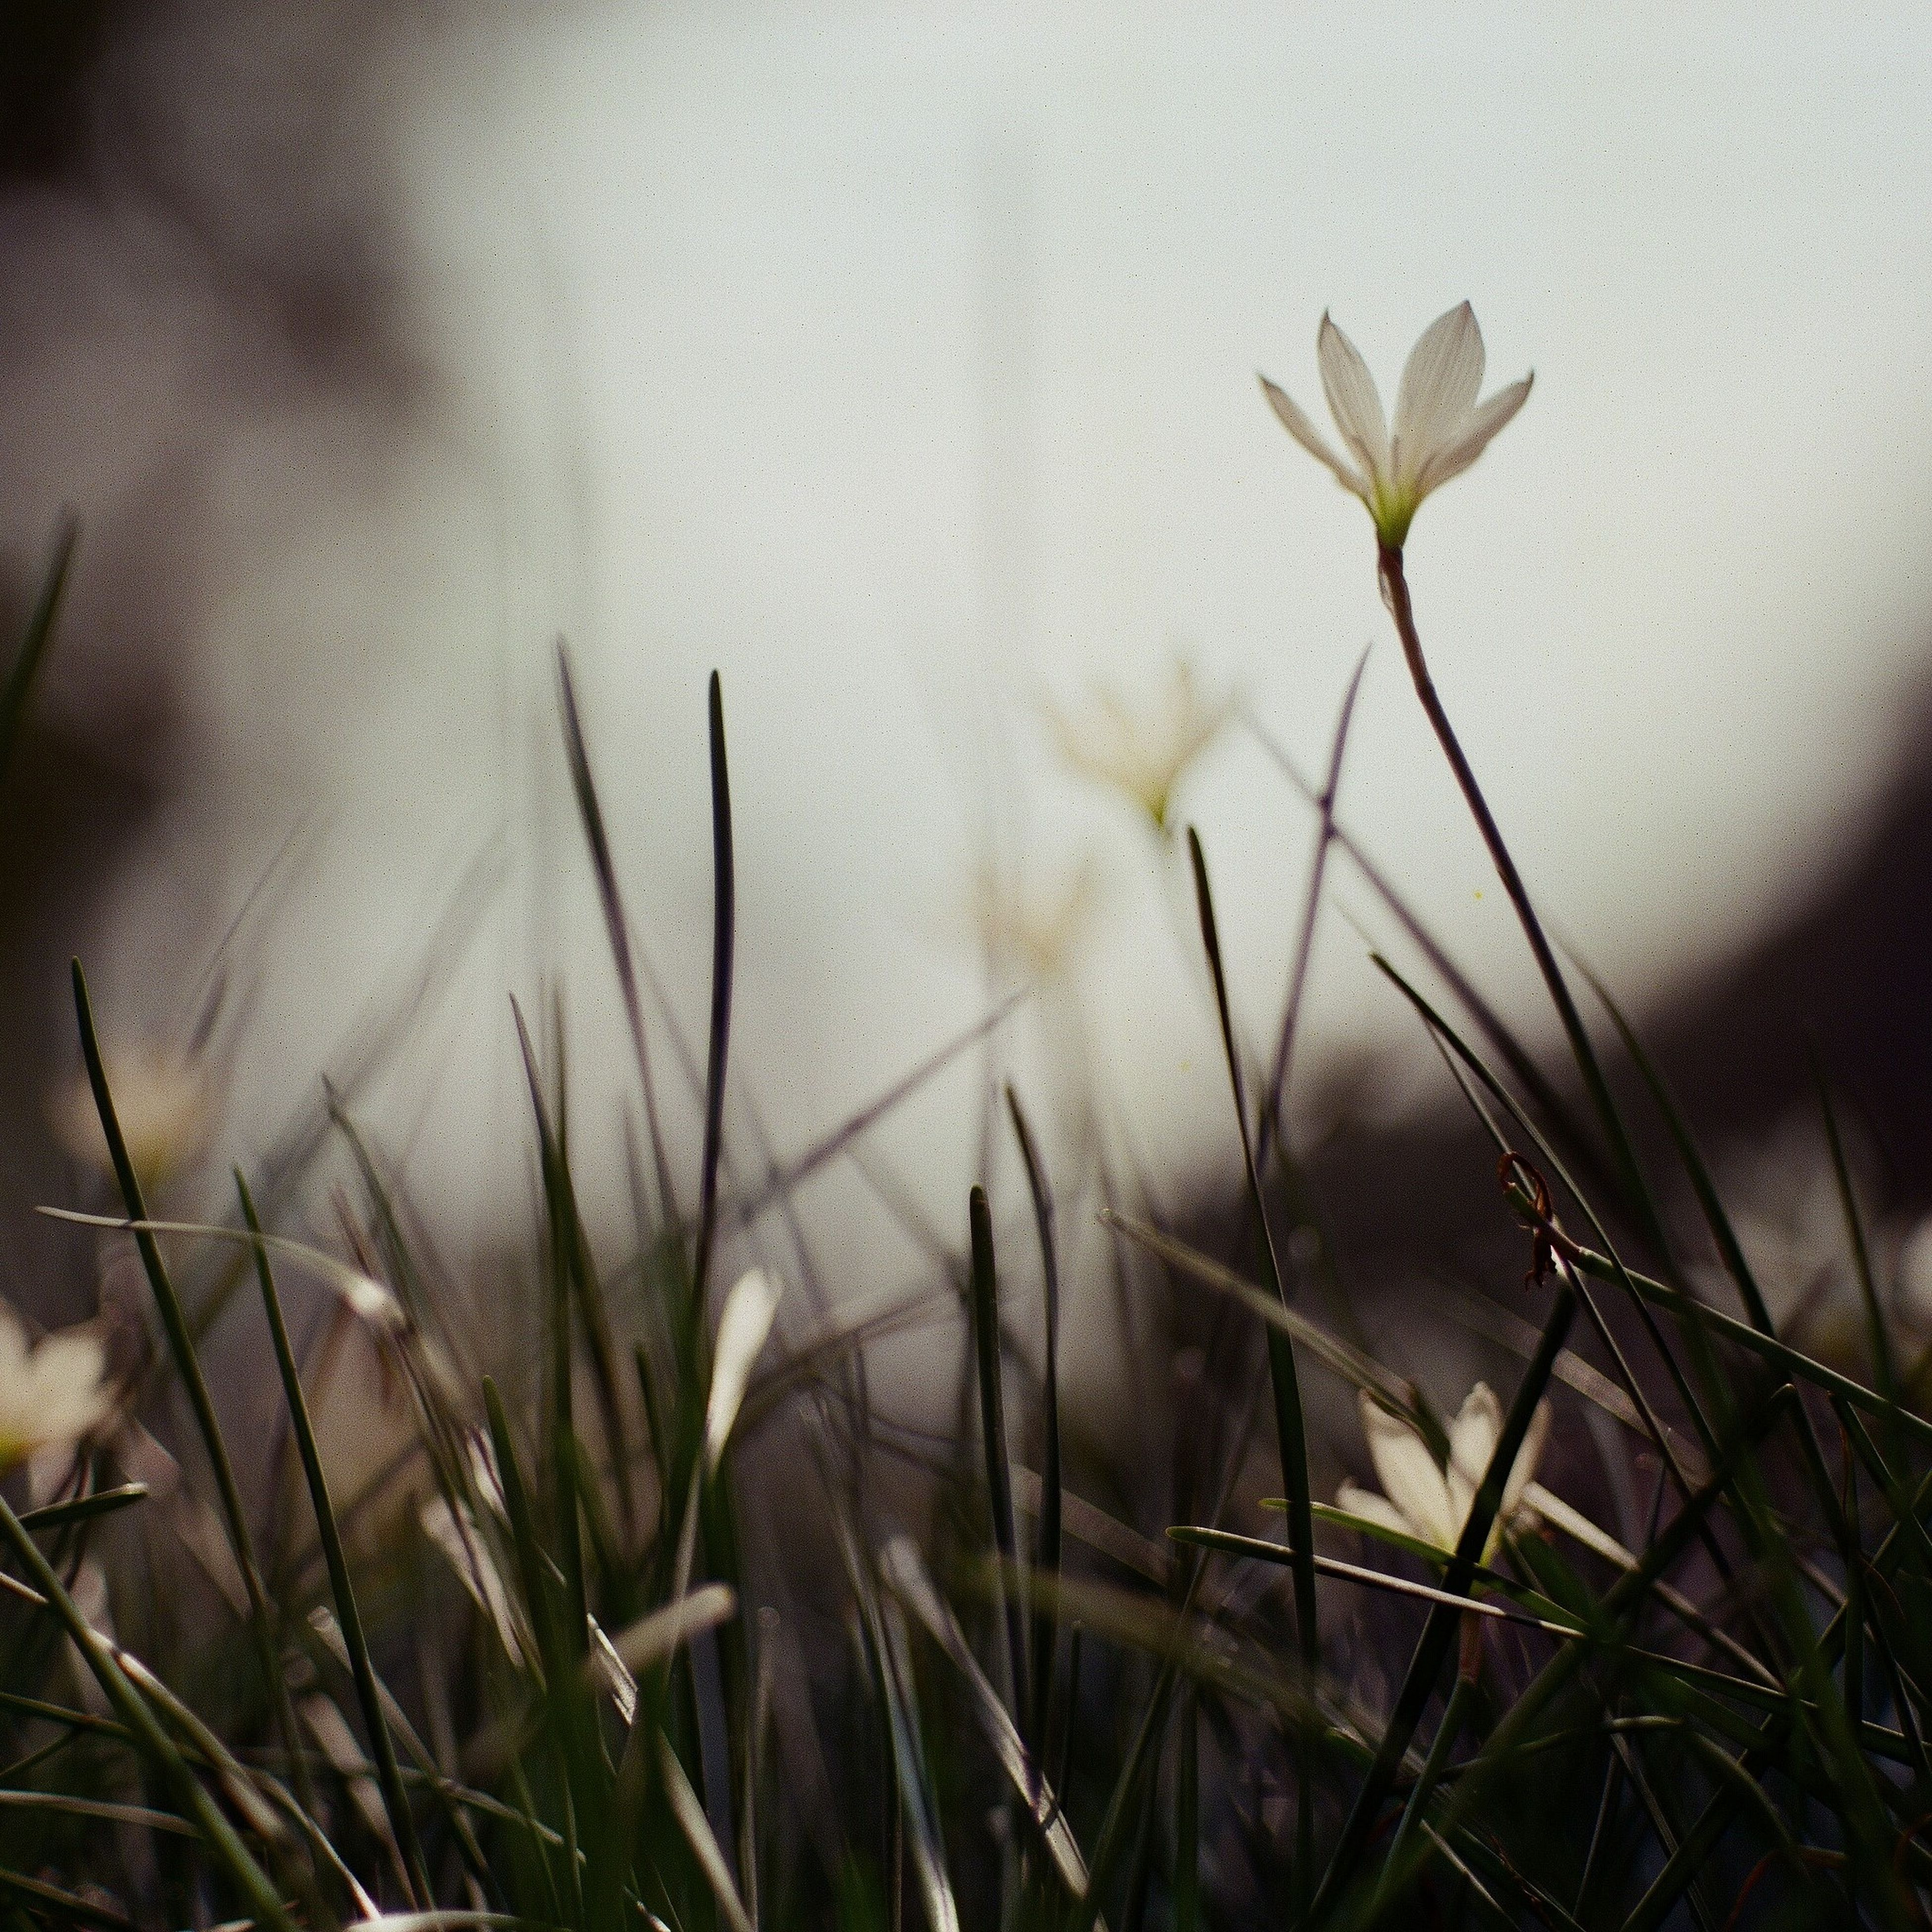 plant, growth, stem, flower, fragility, grass, freshness, close-up, nature, field, focus on foreground, growing, beauty in nature, selective focus, day, outdoors, no people, dry, twig, water